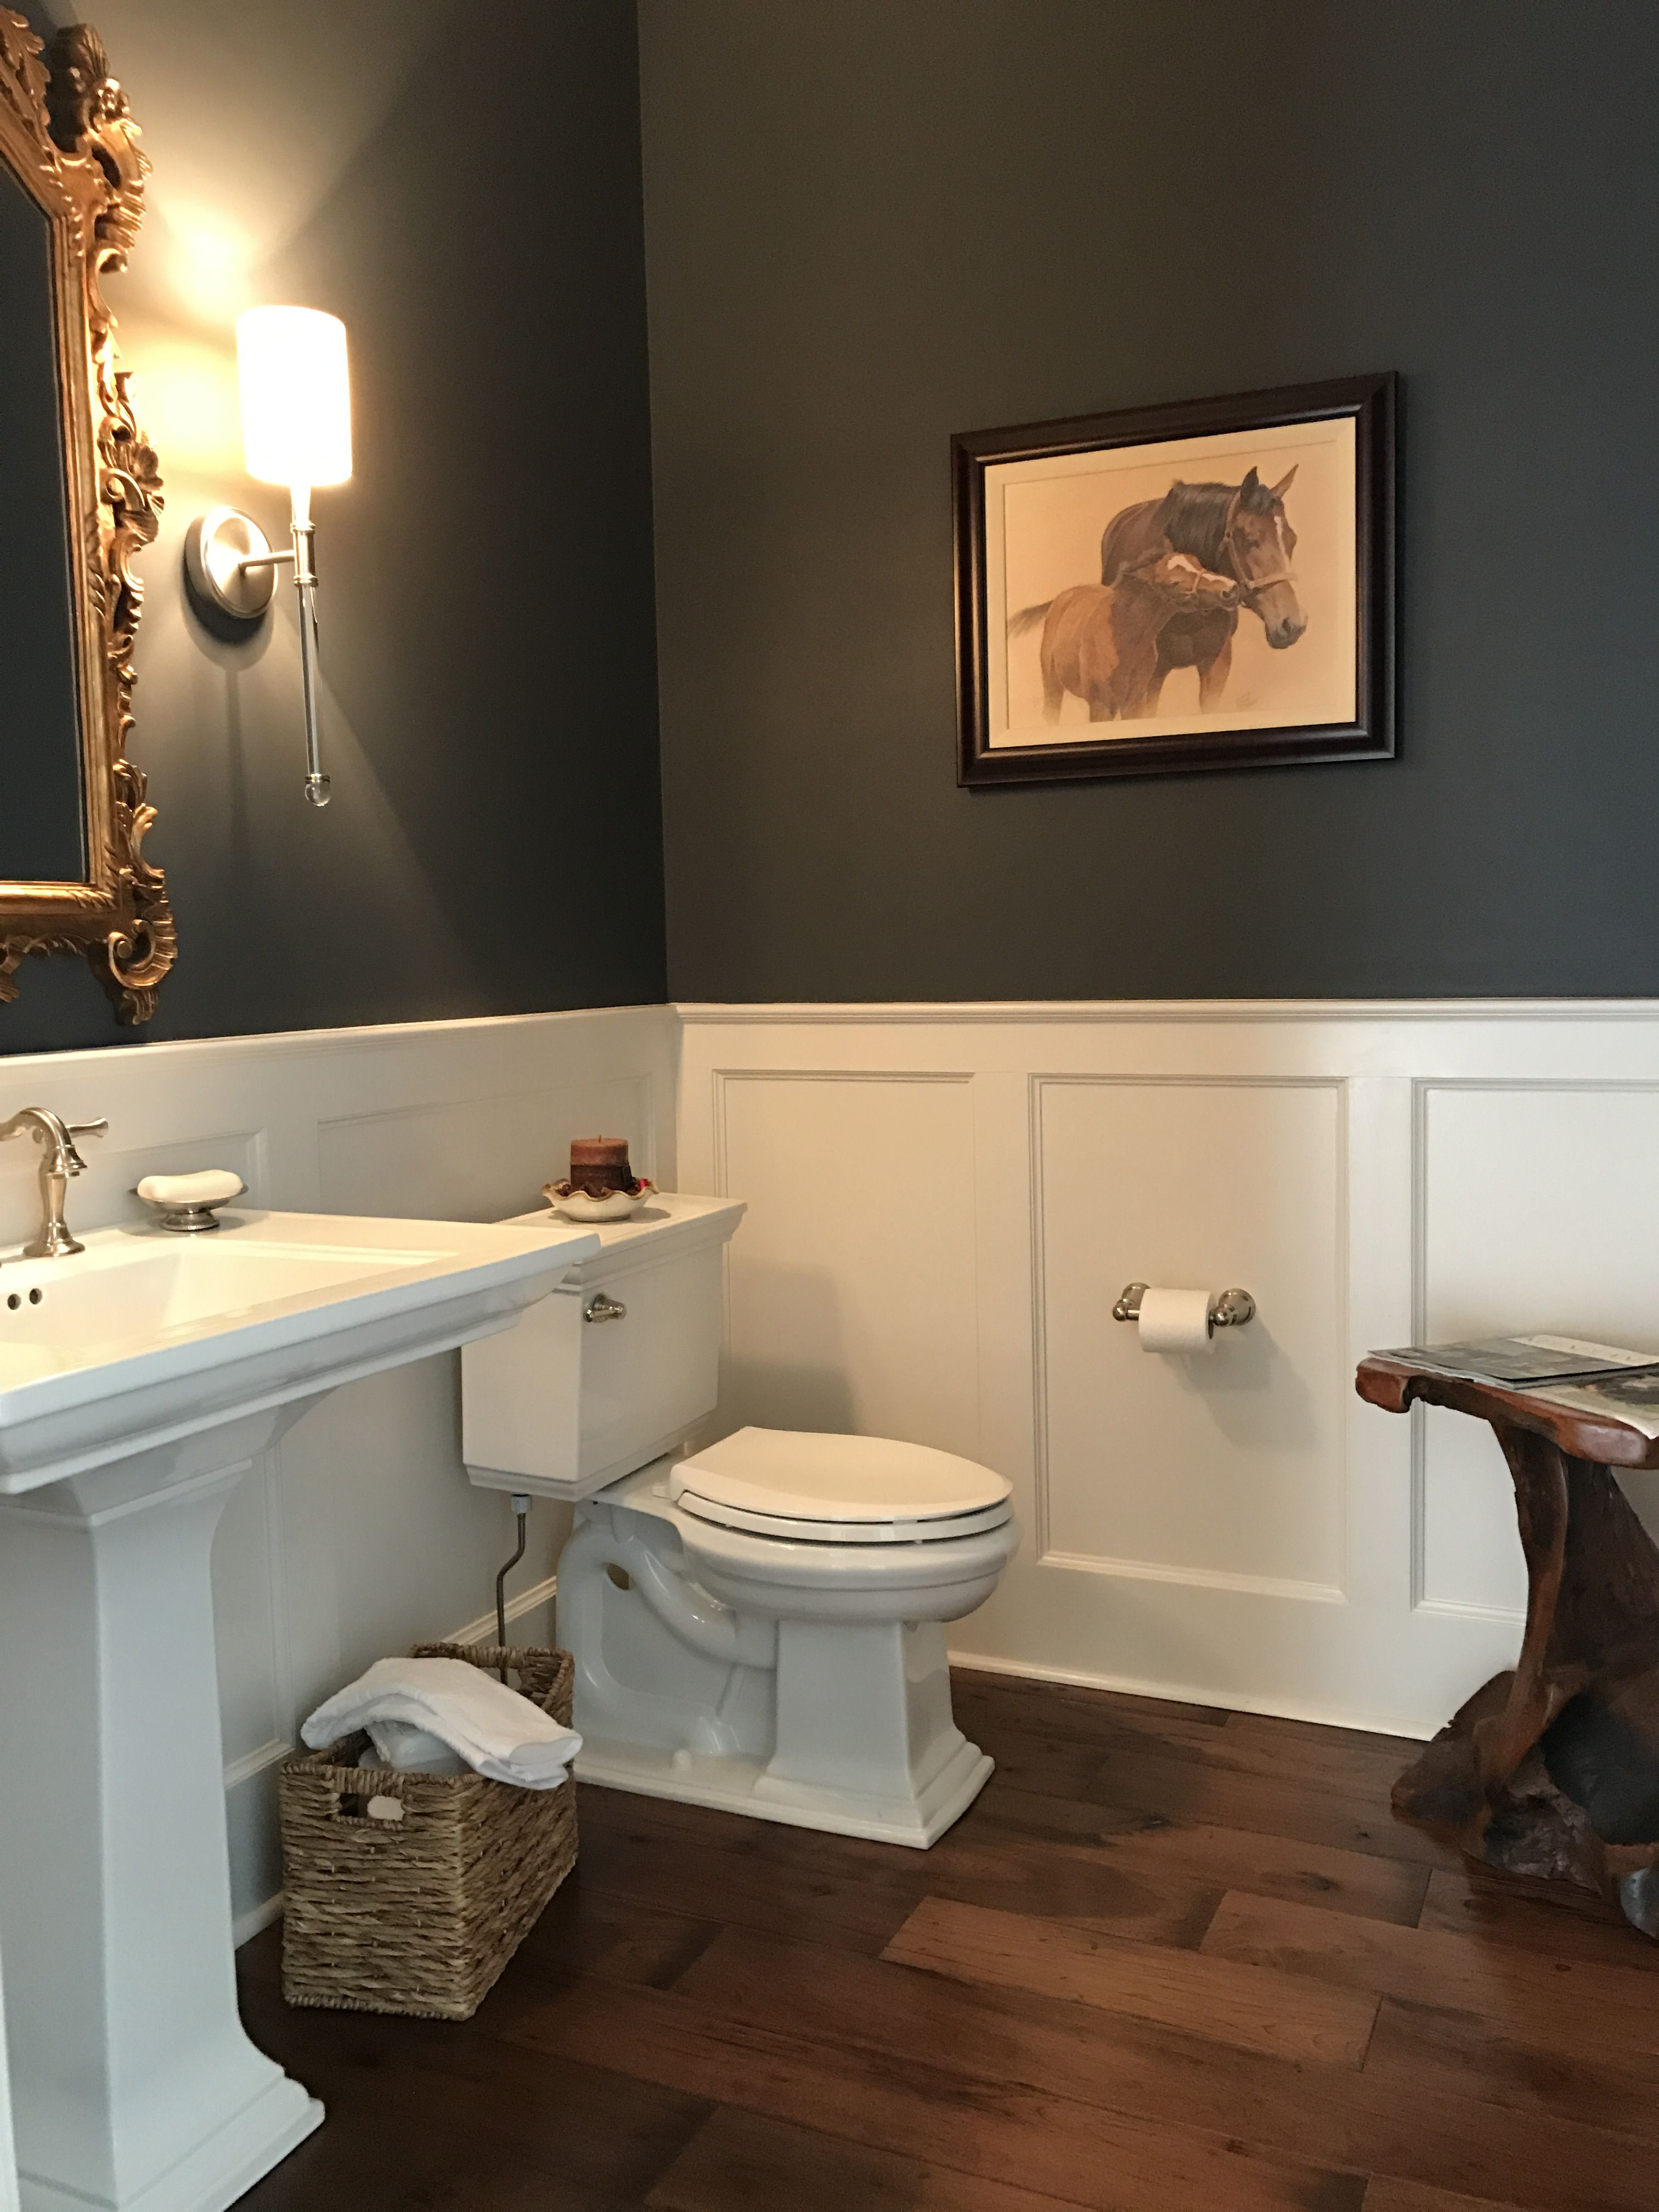 Pin by Just Peachy on Peach construction Vanity